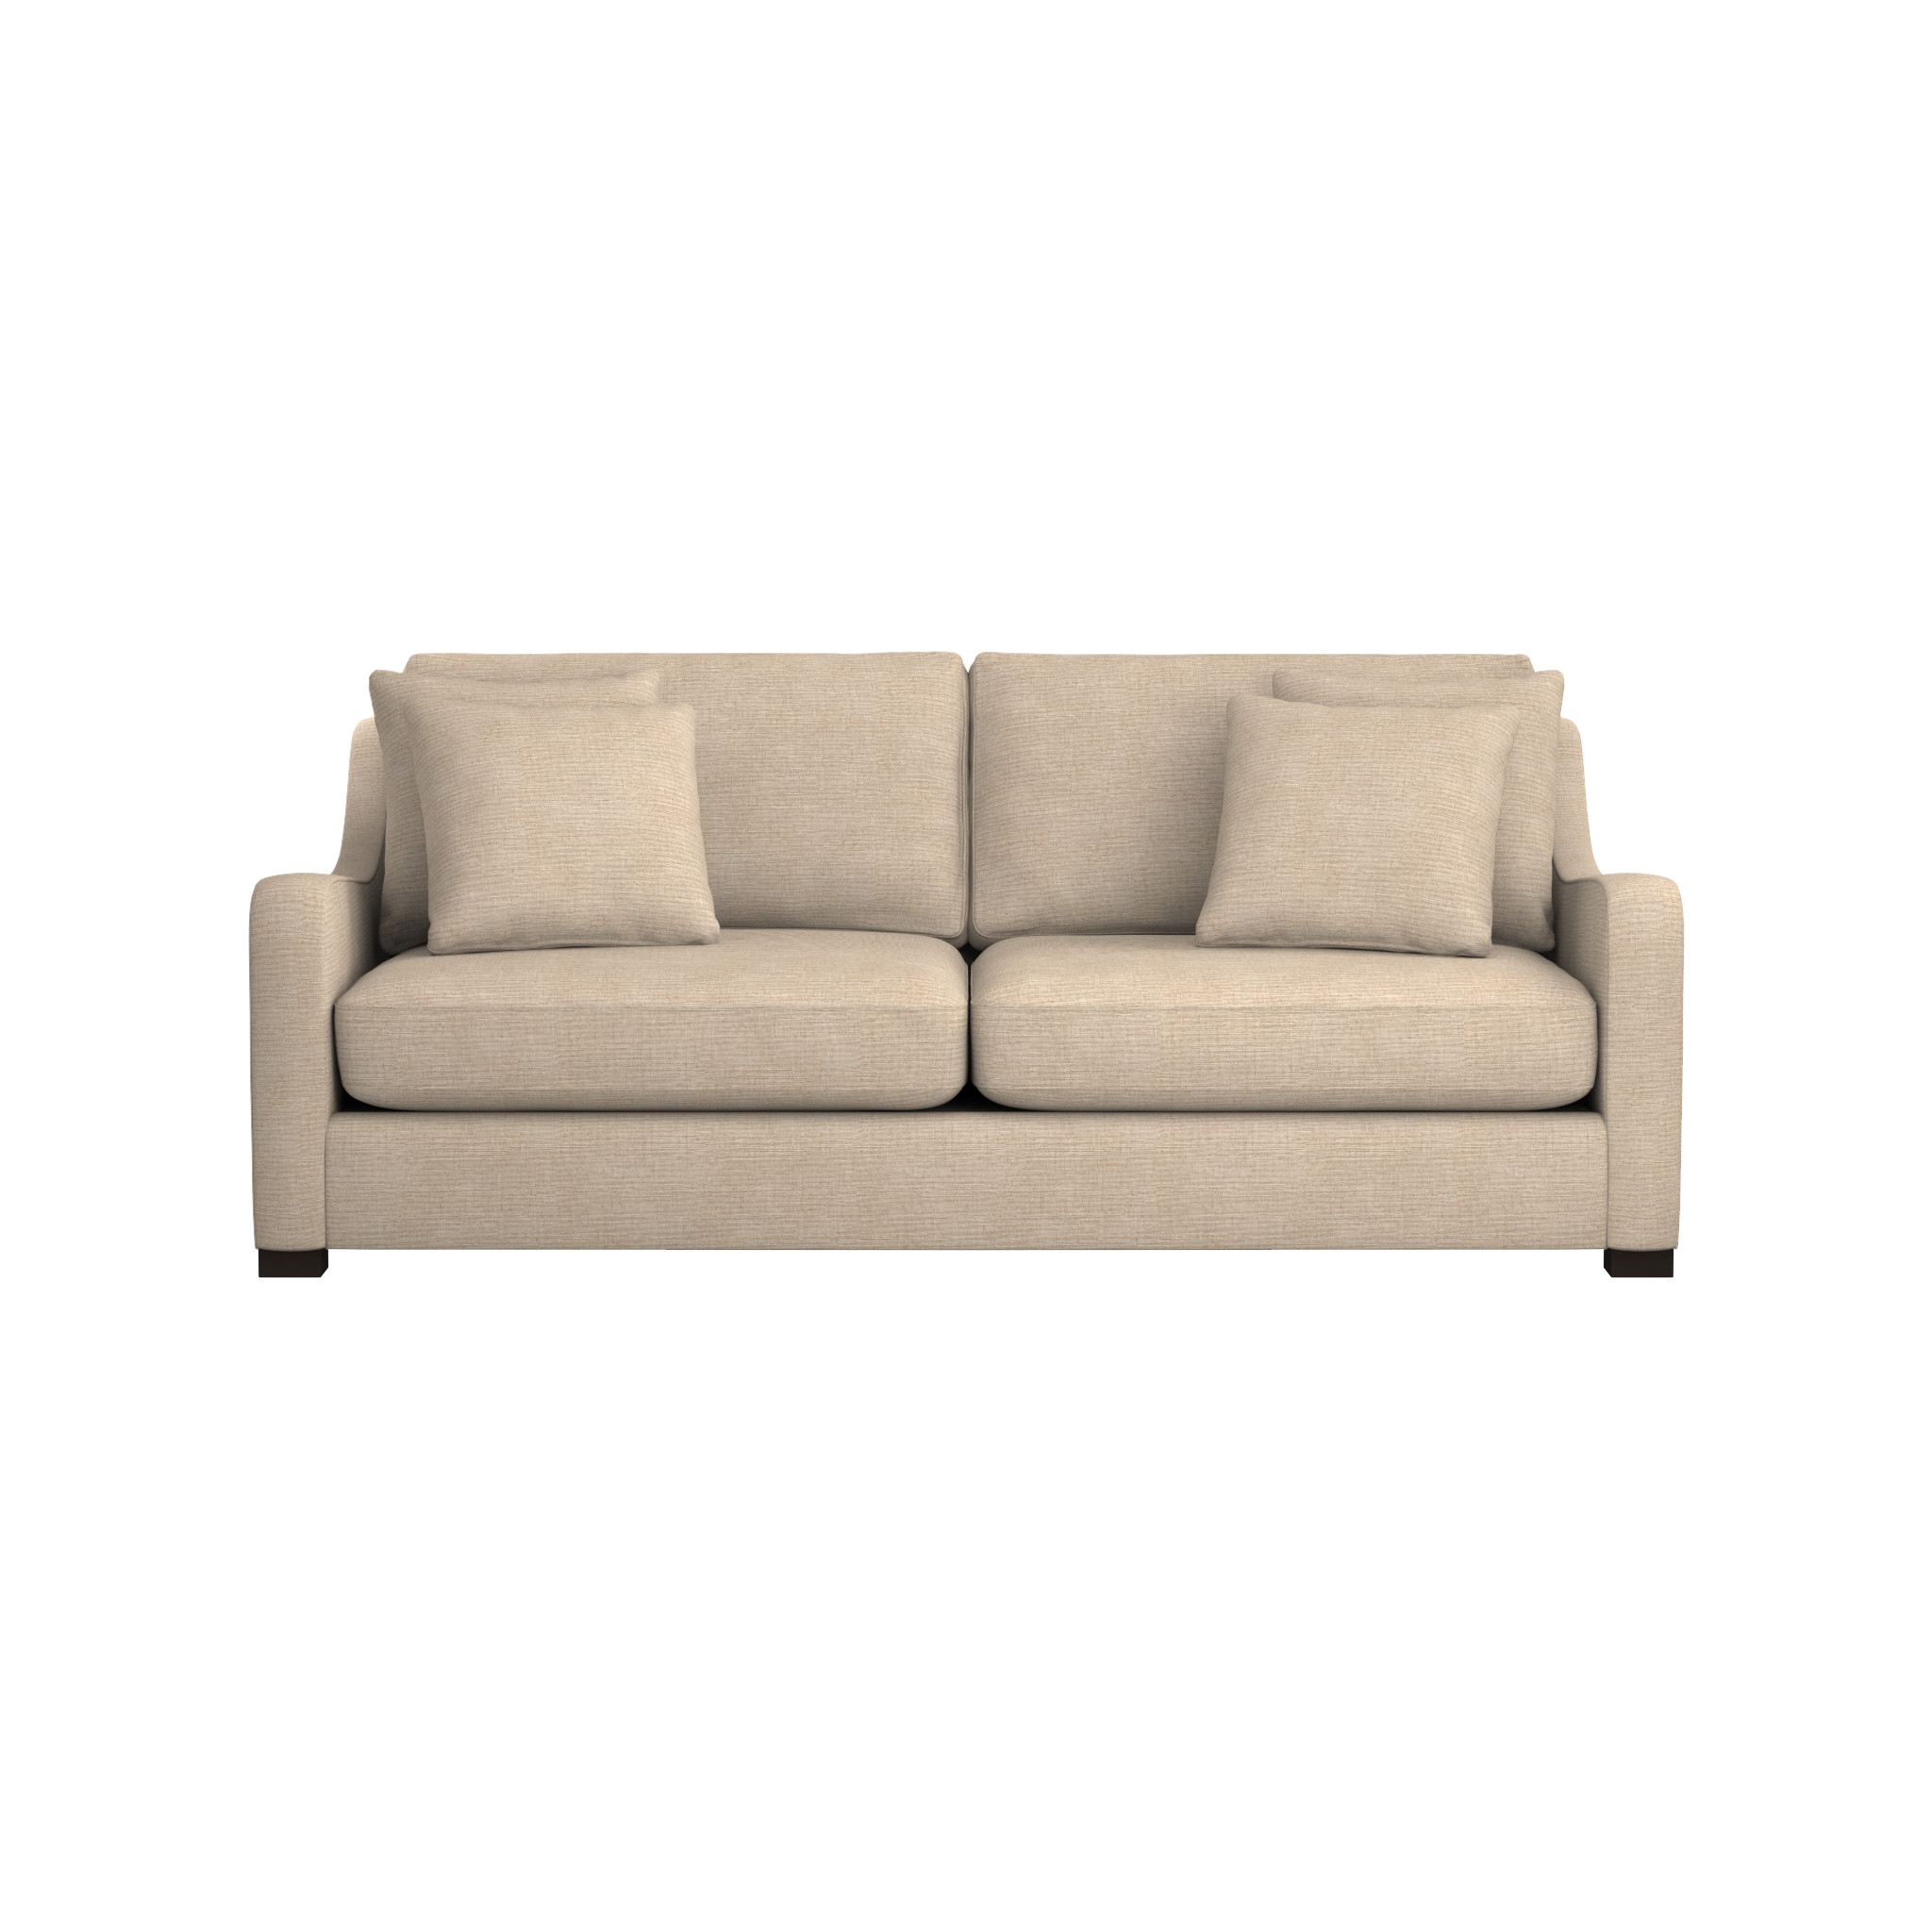 Verano Cream Sofa | Crate And Barrel throughout Down Filled Sectional Sofa (Image 25 of 25)